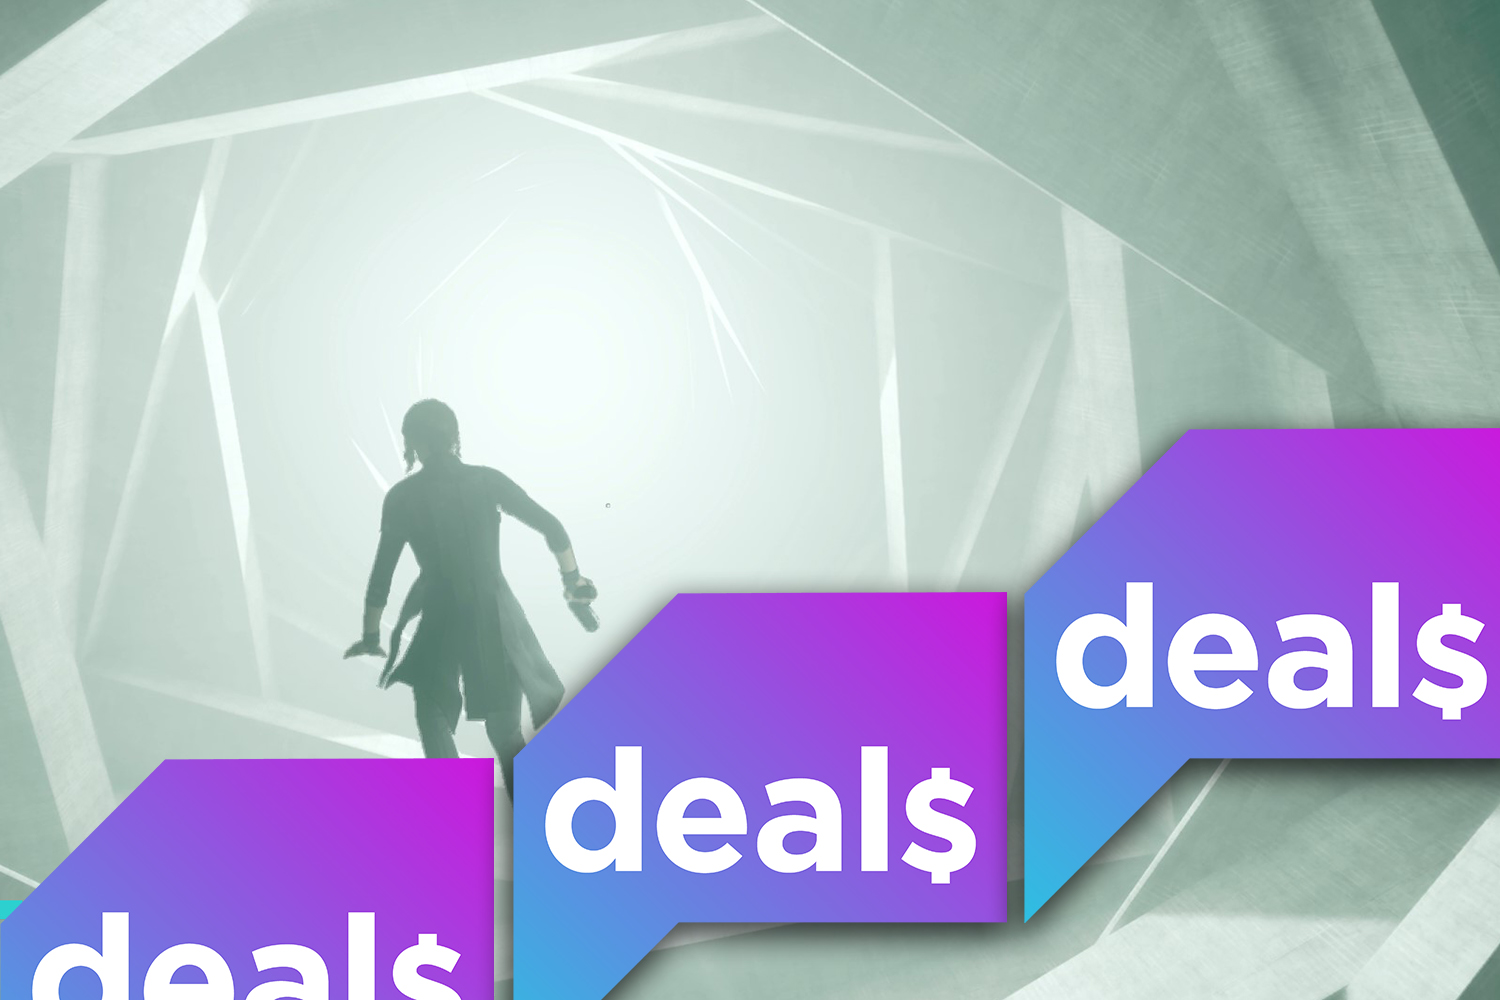 Best Buy's Labor Day deals, Intel's Gamer Days sale, and more gaming discounts